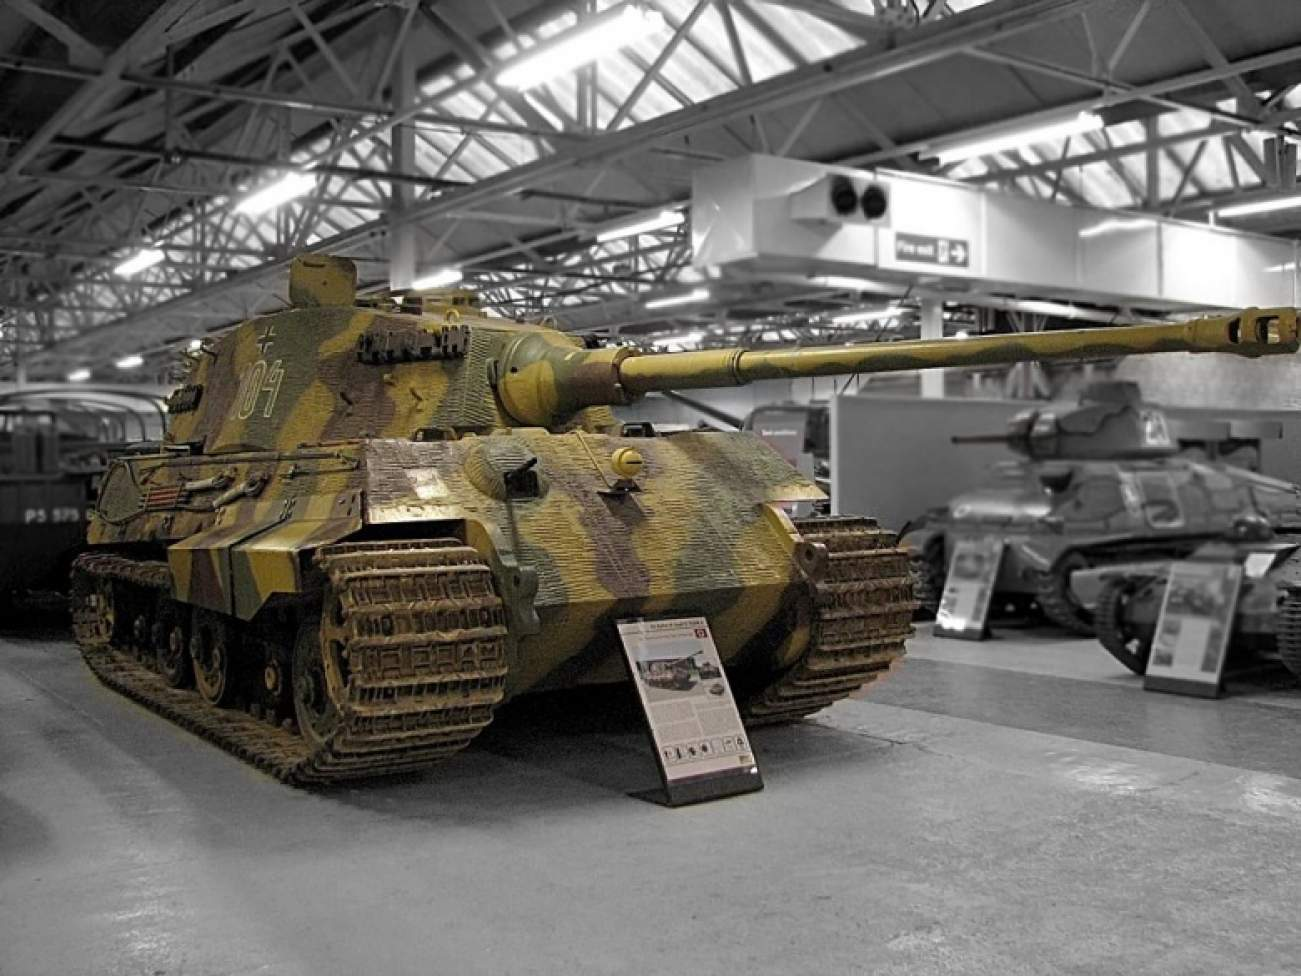 Nazi Germany S King Tiger Tank Super Weapon Or Super Myth The